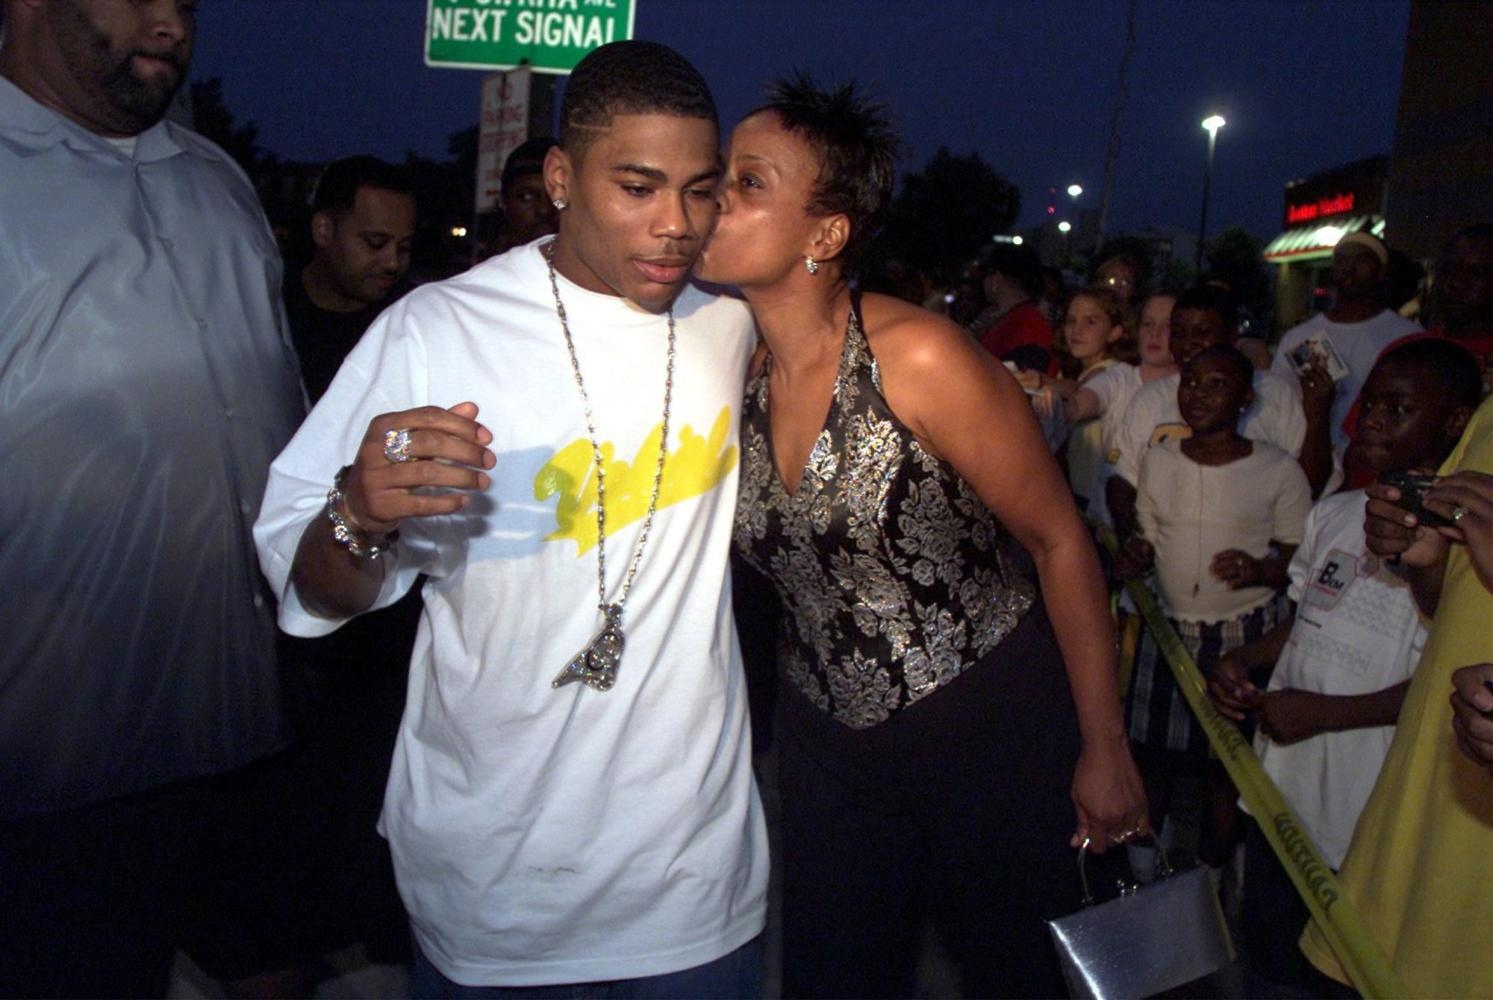 KRT ENTERTAINMENT STORY SLUGGED: NELLY KRT PHOTOGRAPH BY ANDREW CUTRARO/ST. LOUIS POST-DISPATCH (November 8) Hip-hop artist Nelly gets a kiss from his mother Rhonda Mack after they arrived at the Esquire theatre, in St. Louis, Missouri, for the premier of the movie